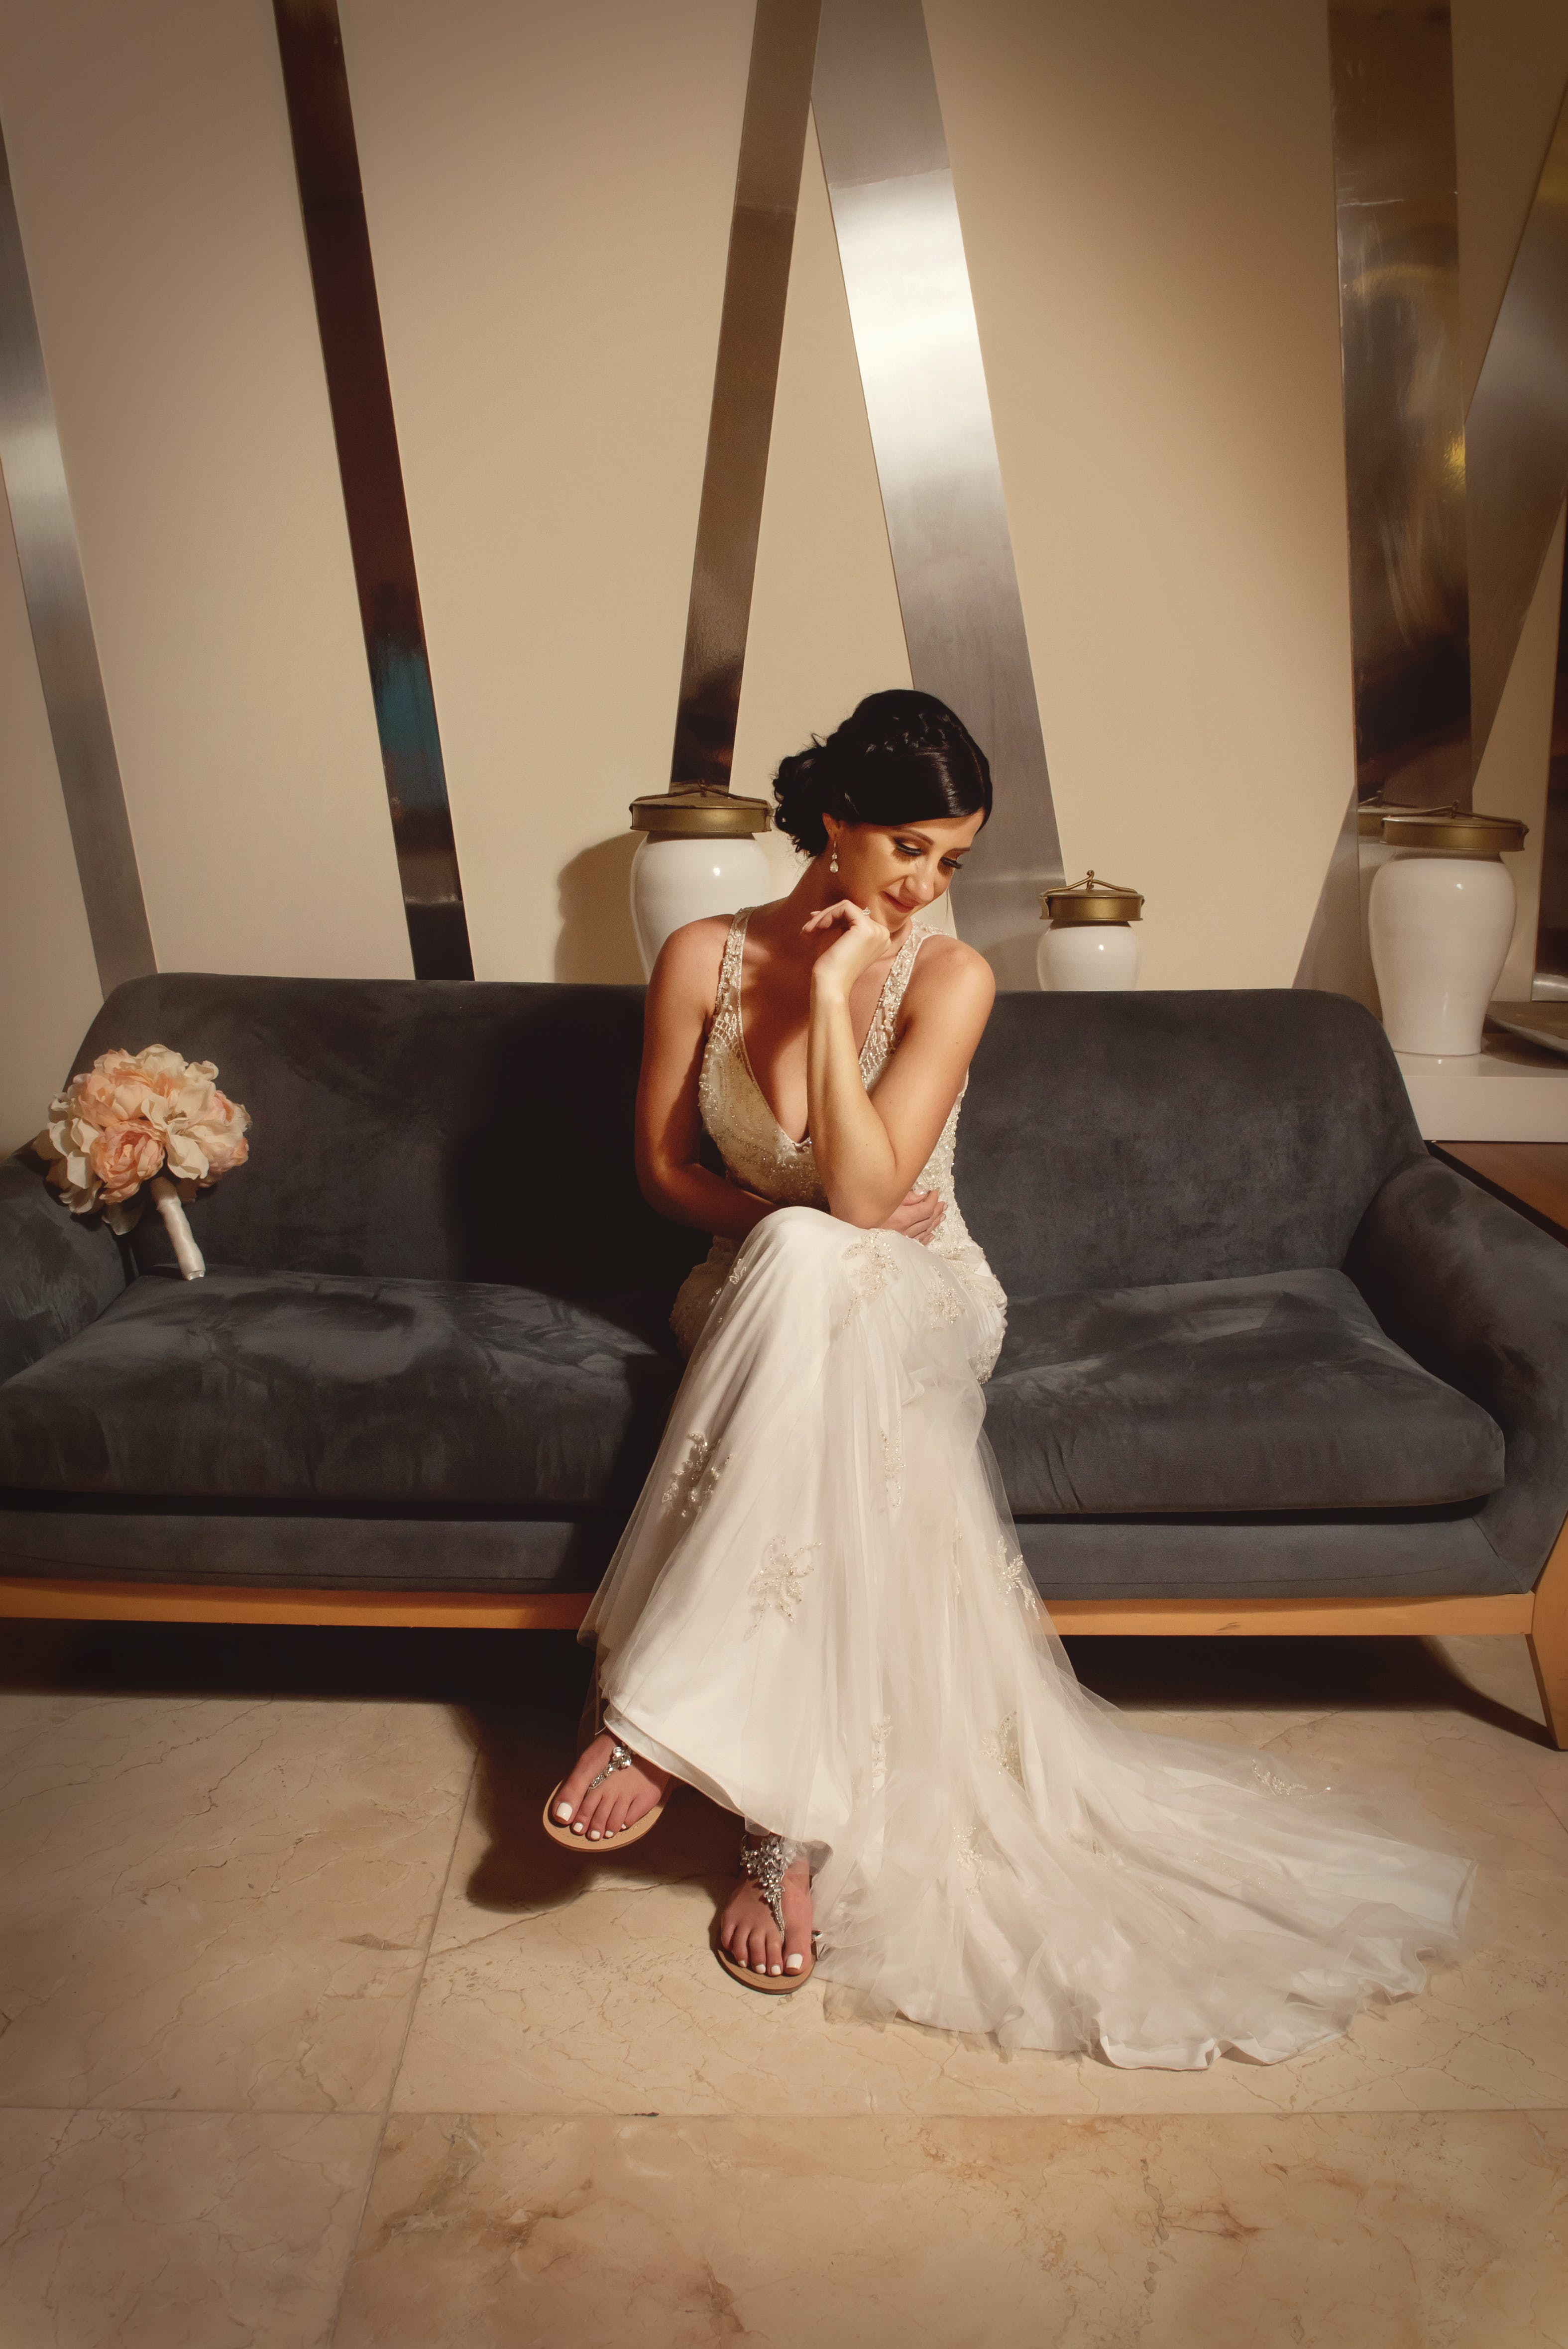 Woman In Wedding Gown Sitting On Sofa